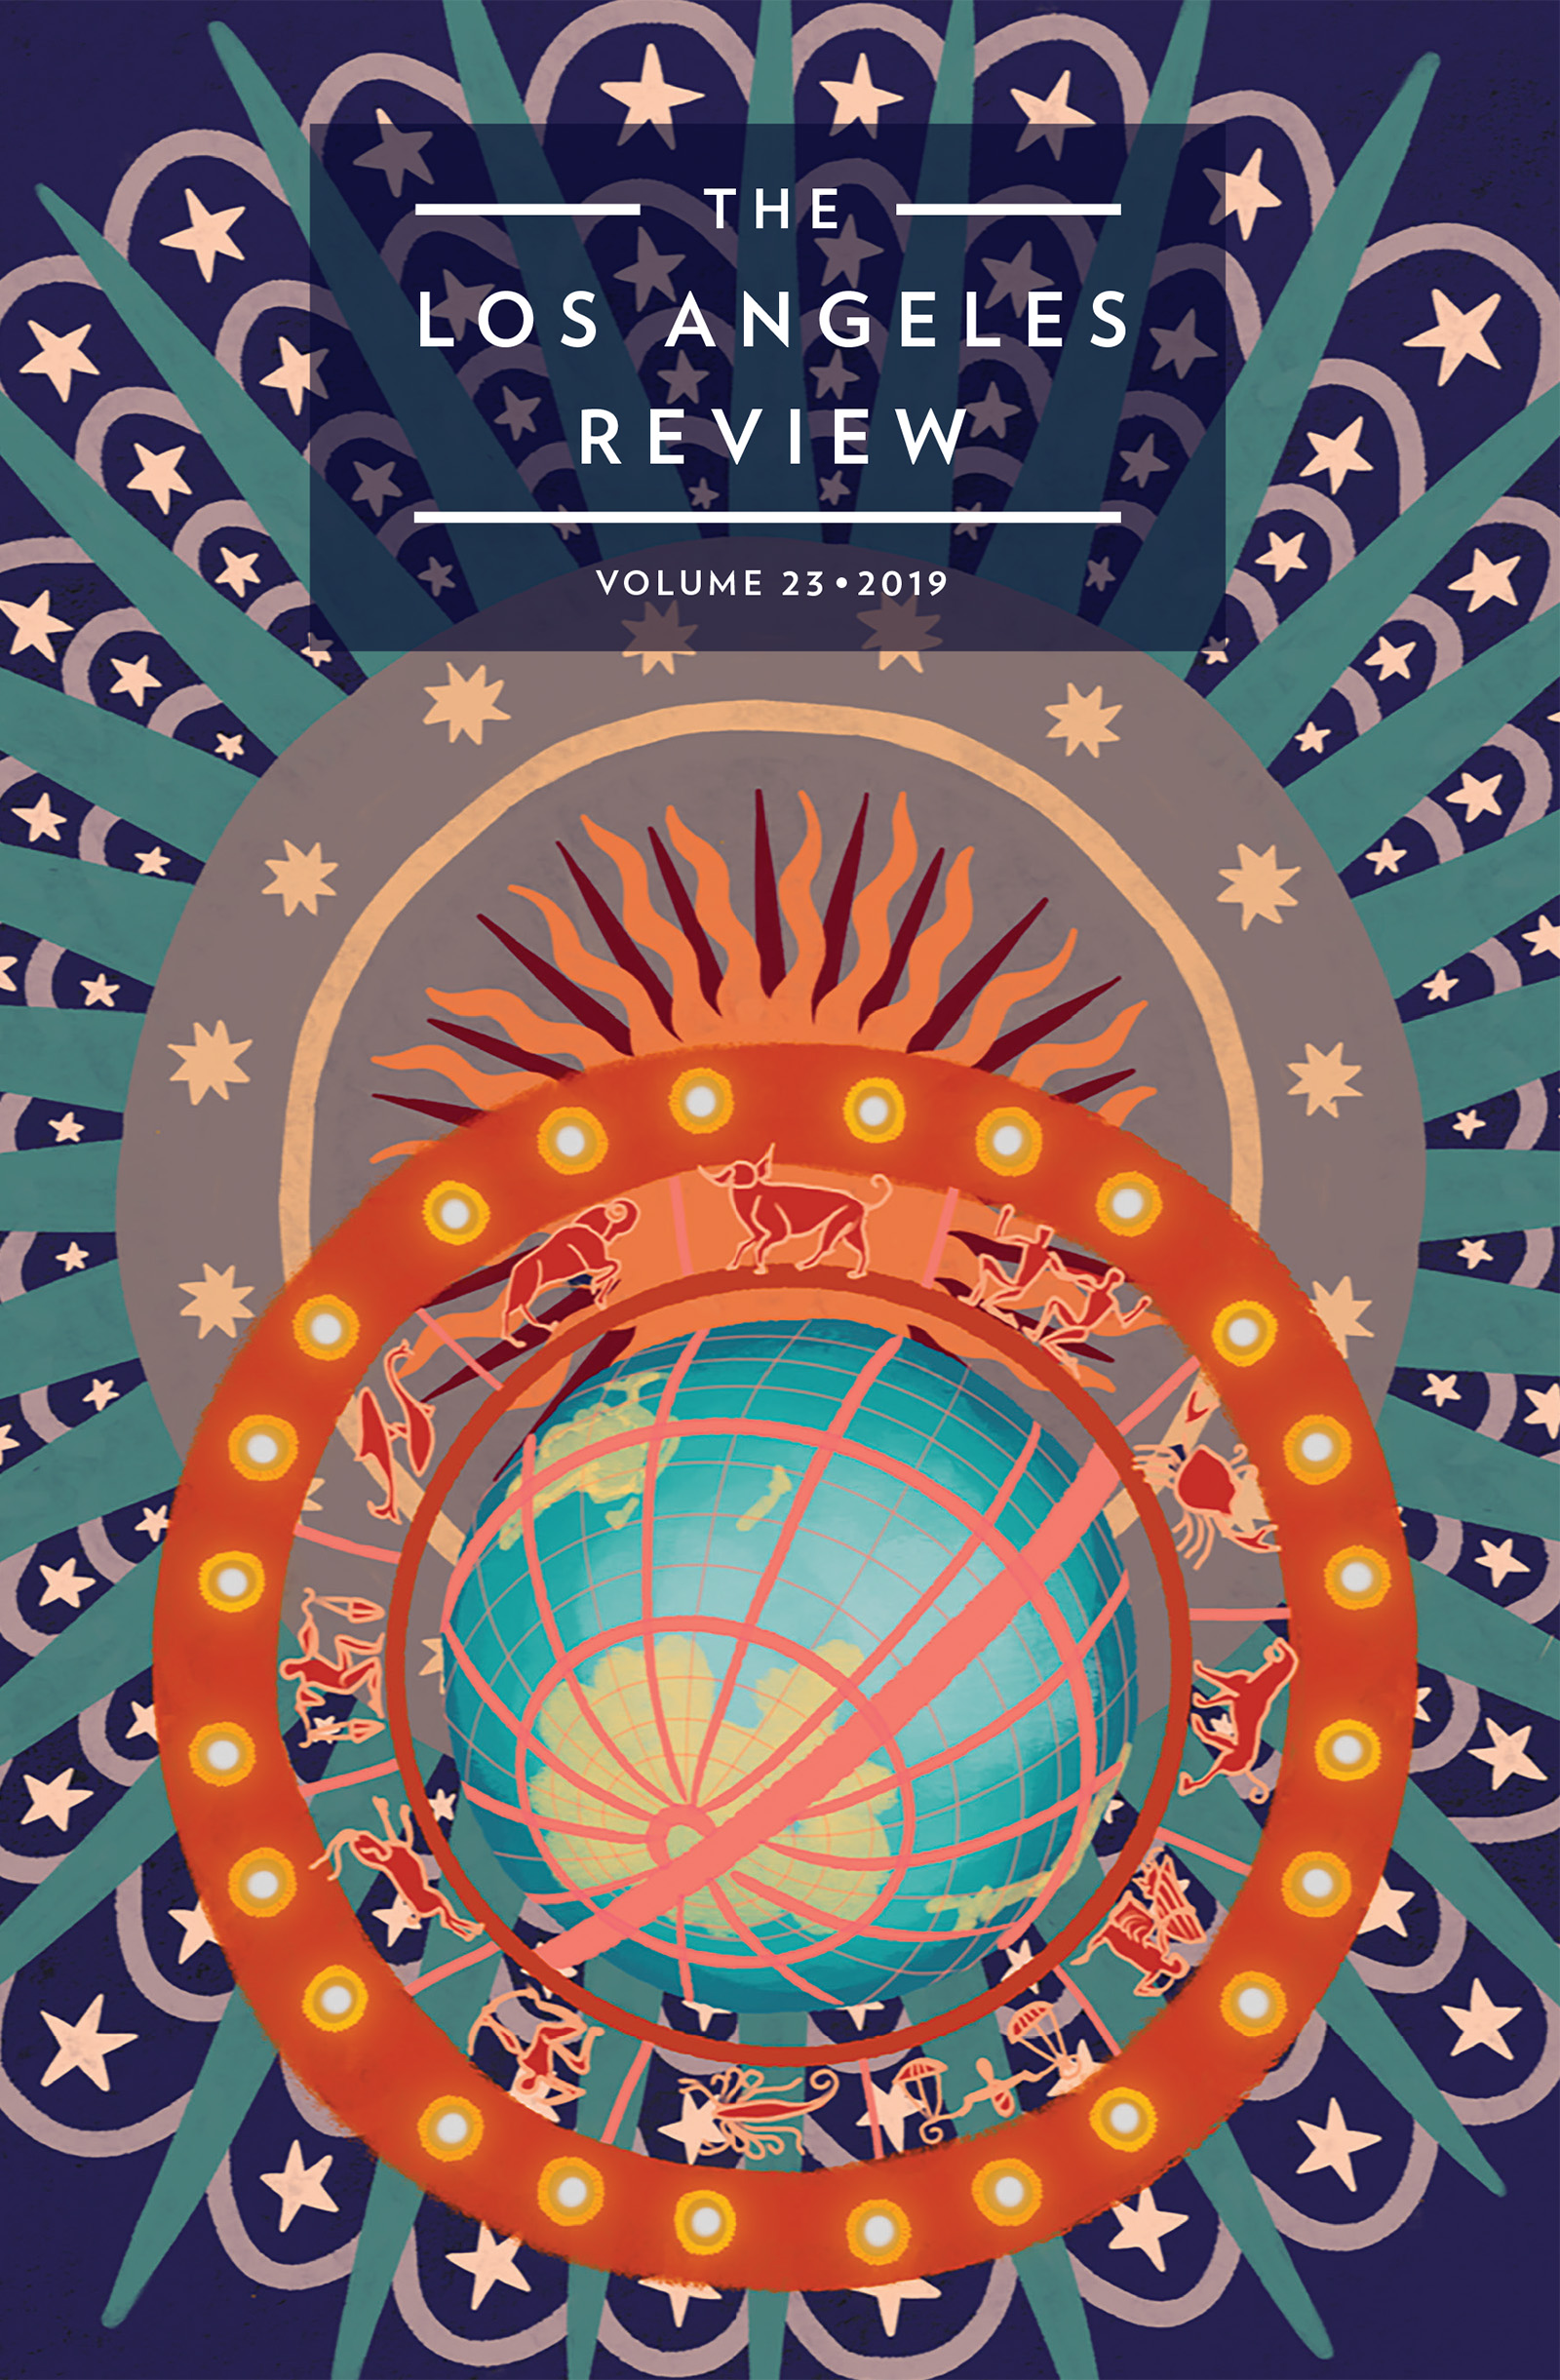 A colorful and psychedelic graphic design of a sun and the earth surrounded by the different zodiac signs at the center with white text at the top that reads The Los Angeles Review Volume 23 2019.